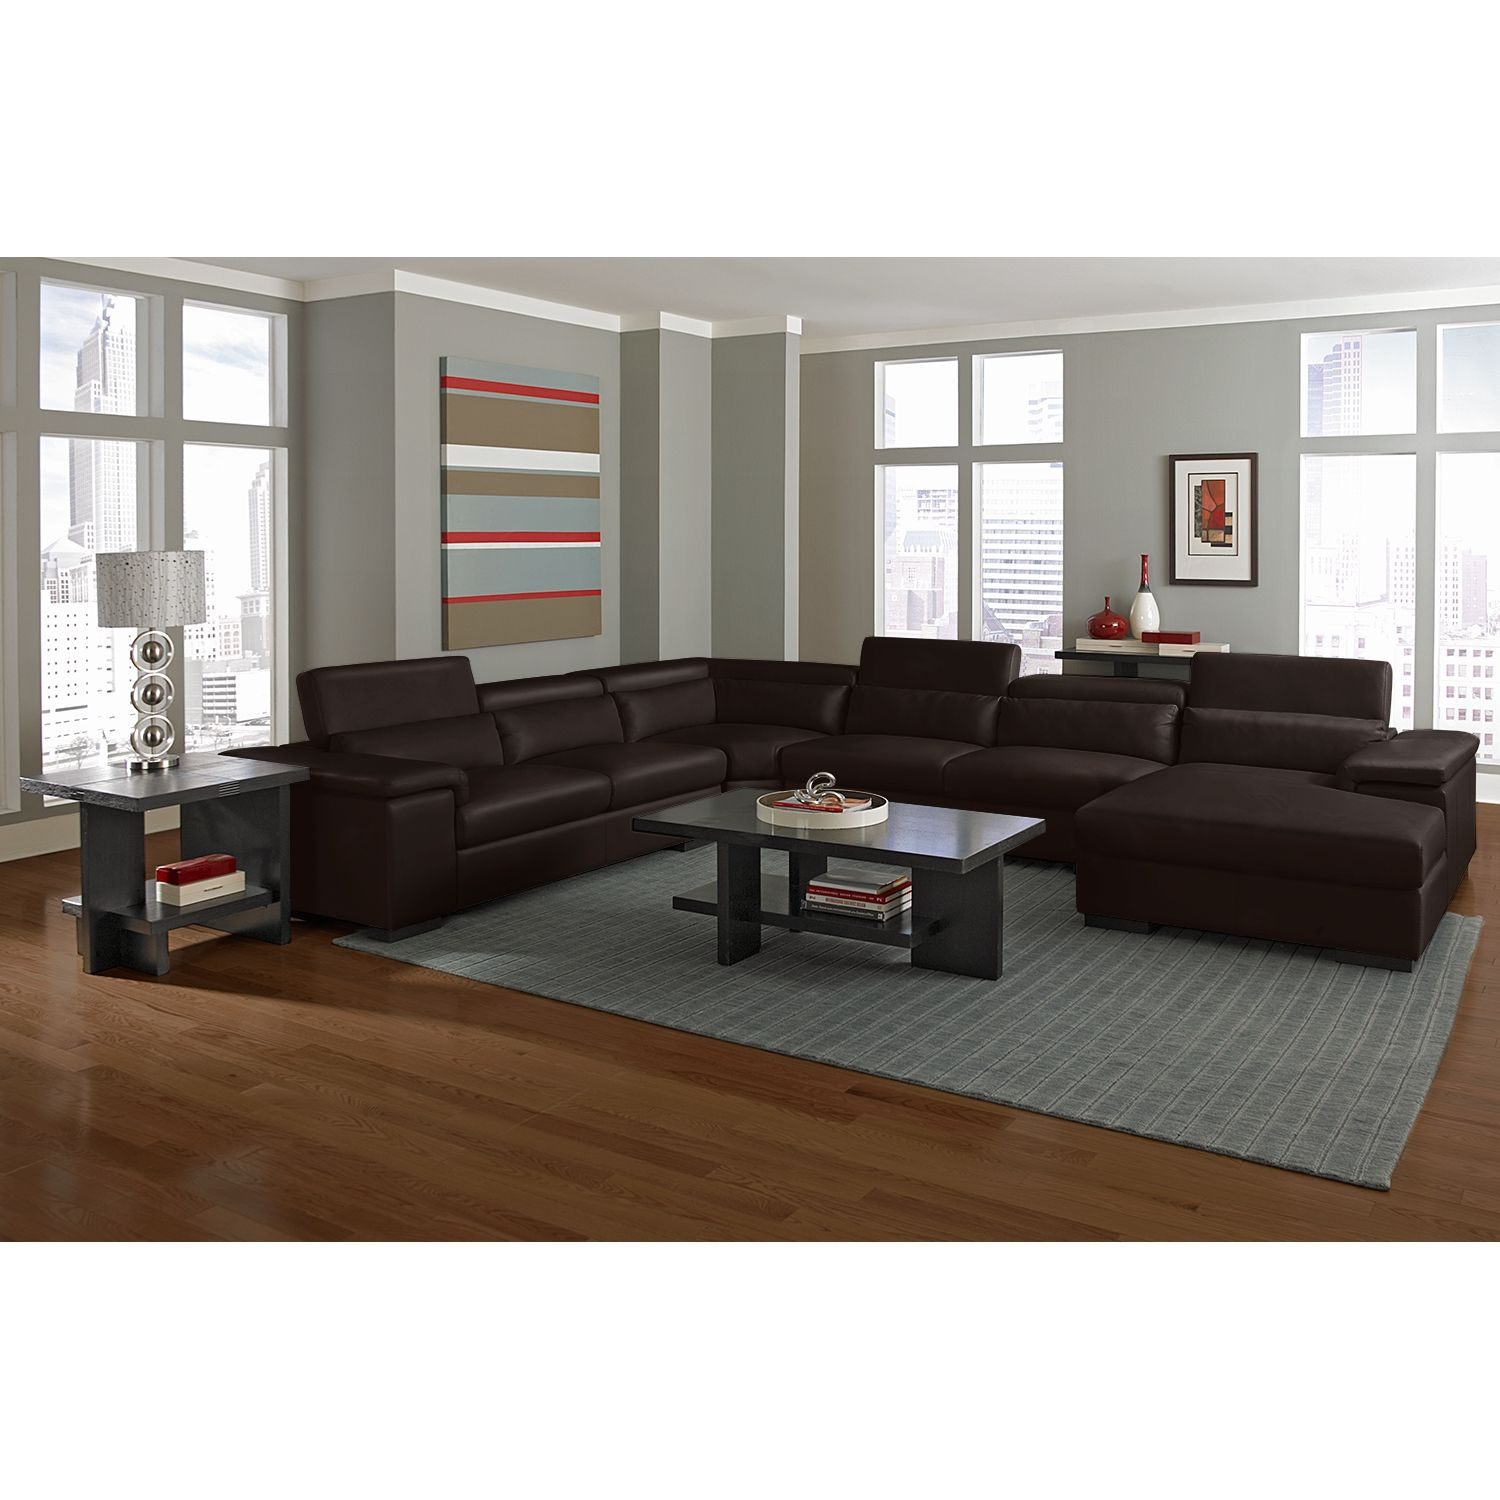 American Signature Furniture Ventana II Leather 4 Pc Sectional